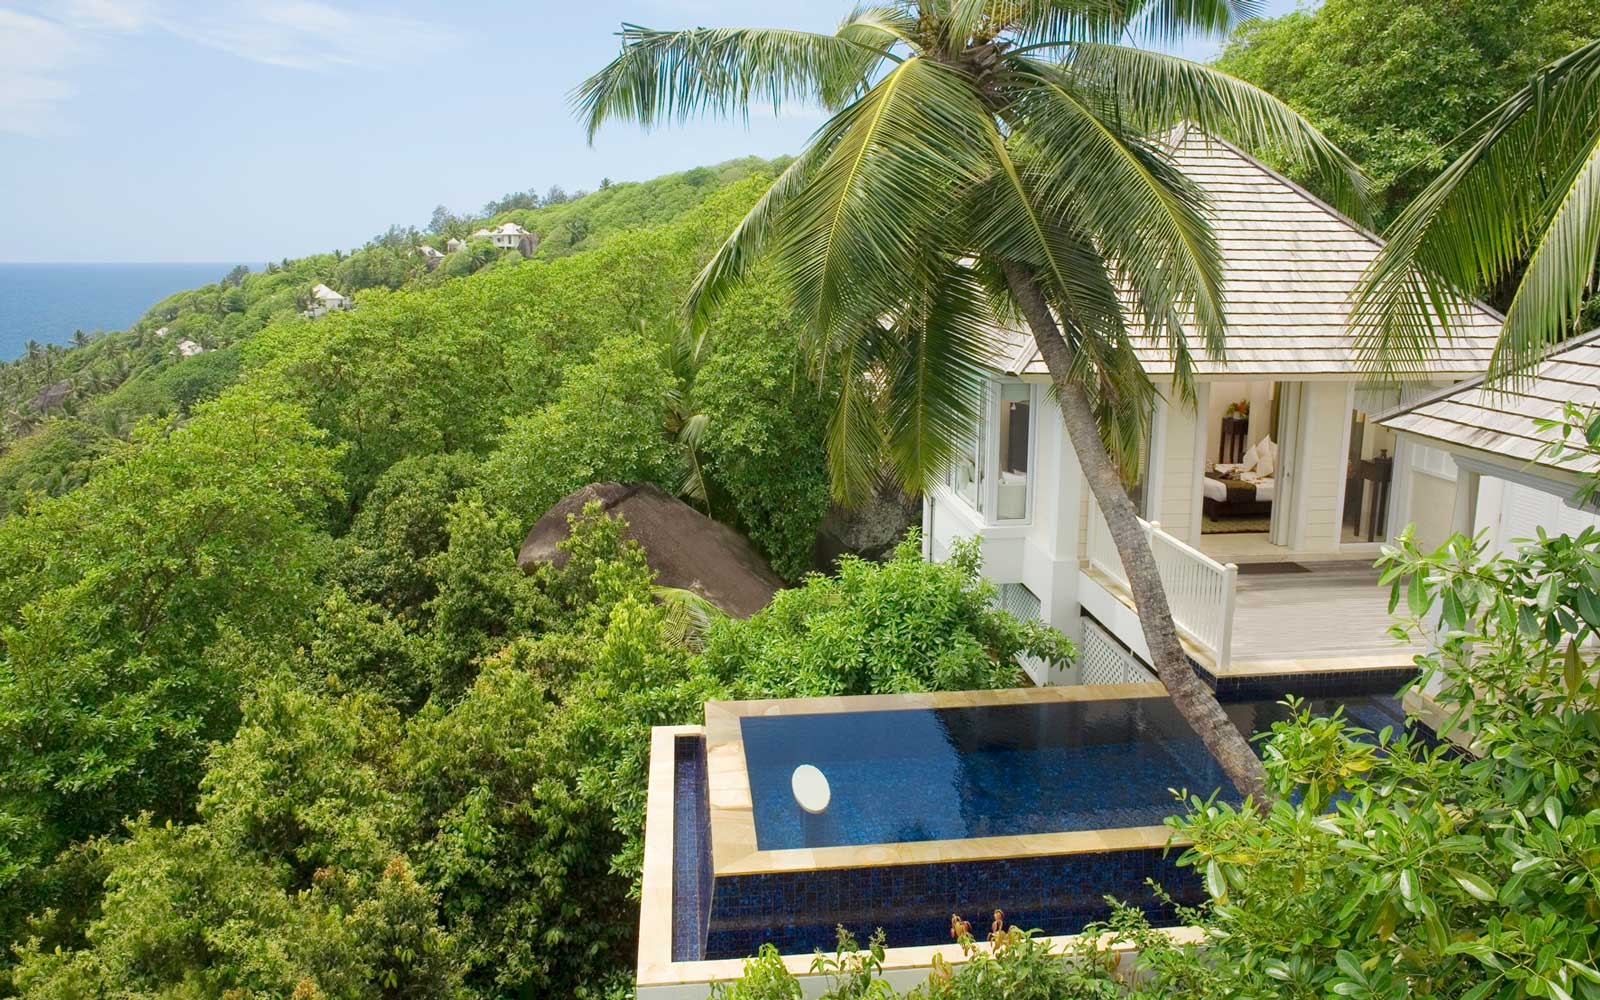 View of a villa at the Banyan Tree in the Seychelles